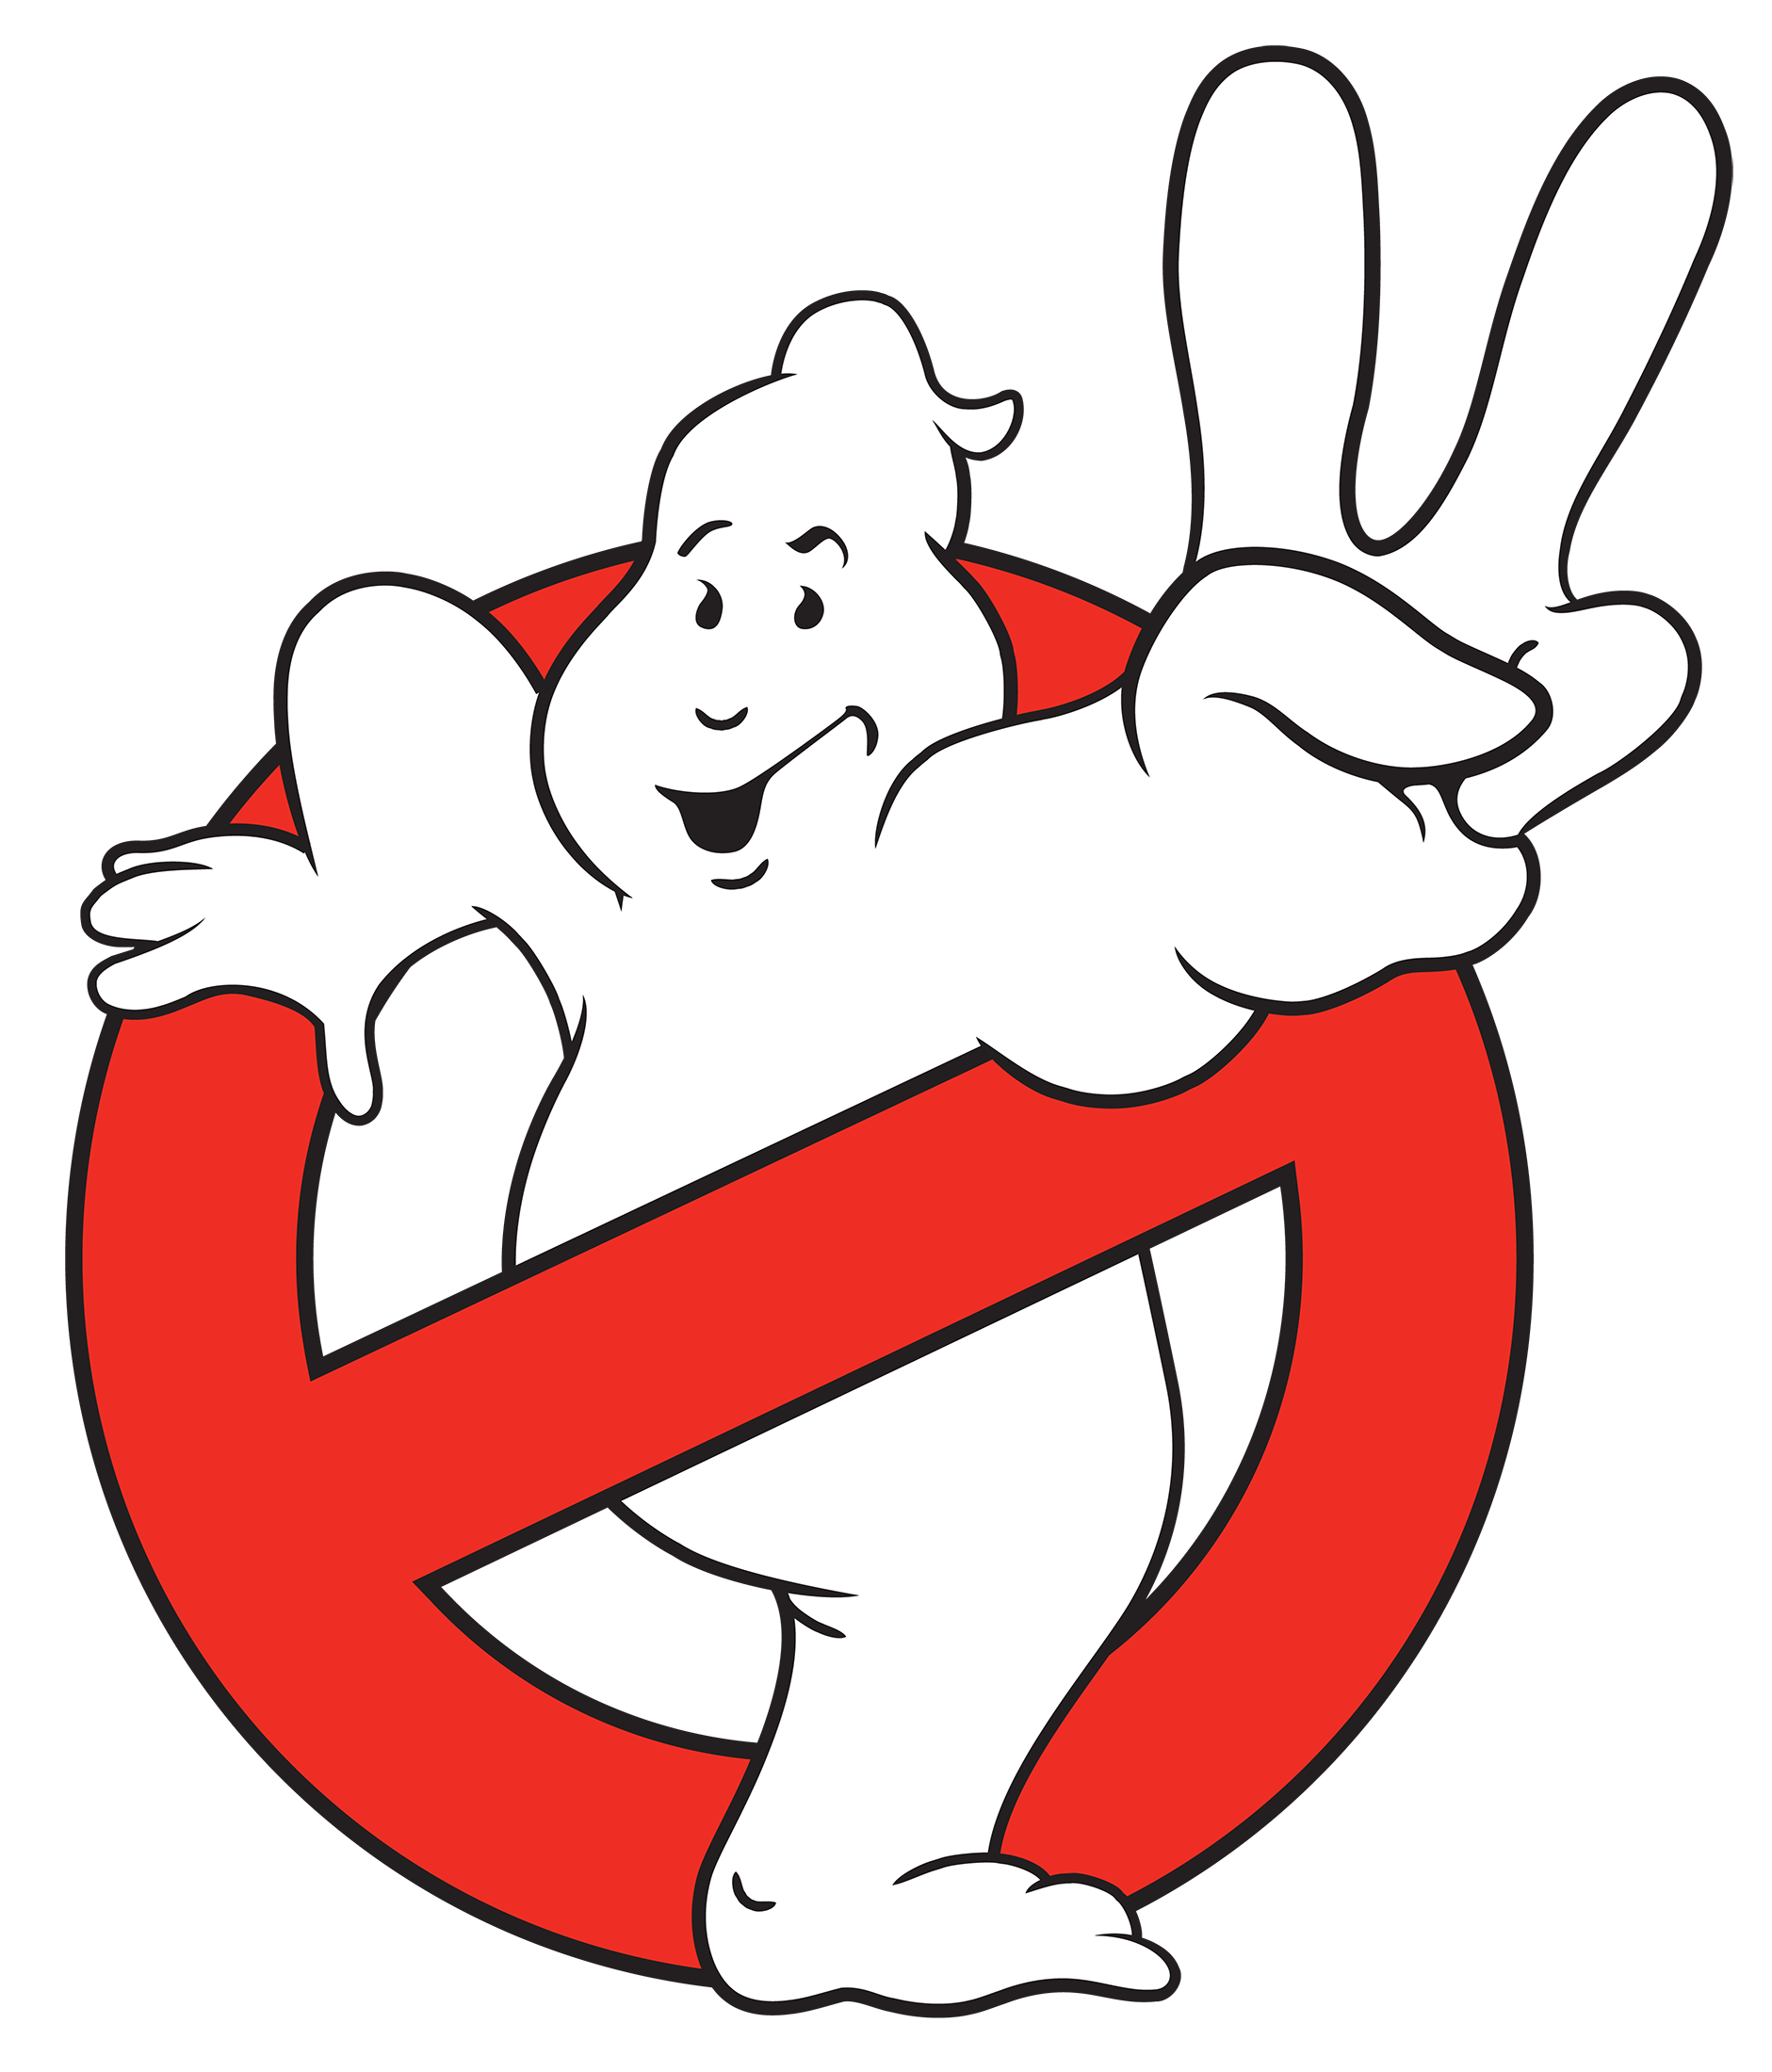 Ghostbusters logo png. Image gb officialcreativeassestsgb edit